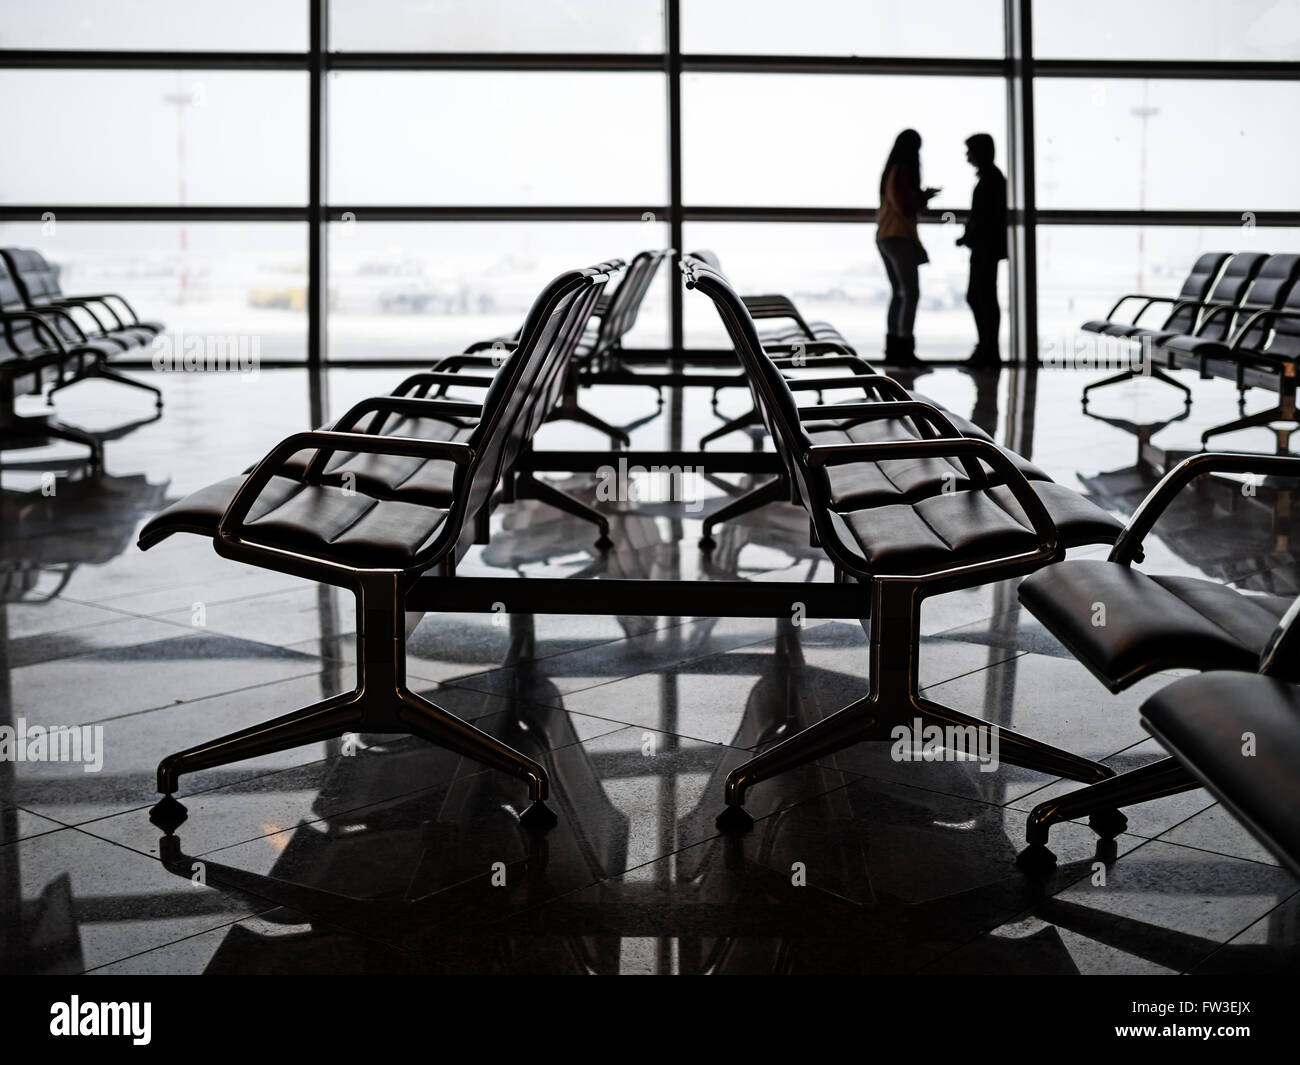 Empty seats at the departure lounge in the Airport, shallow depth of field - Stock Image